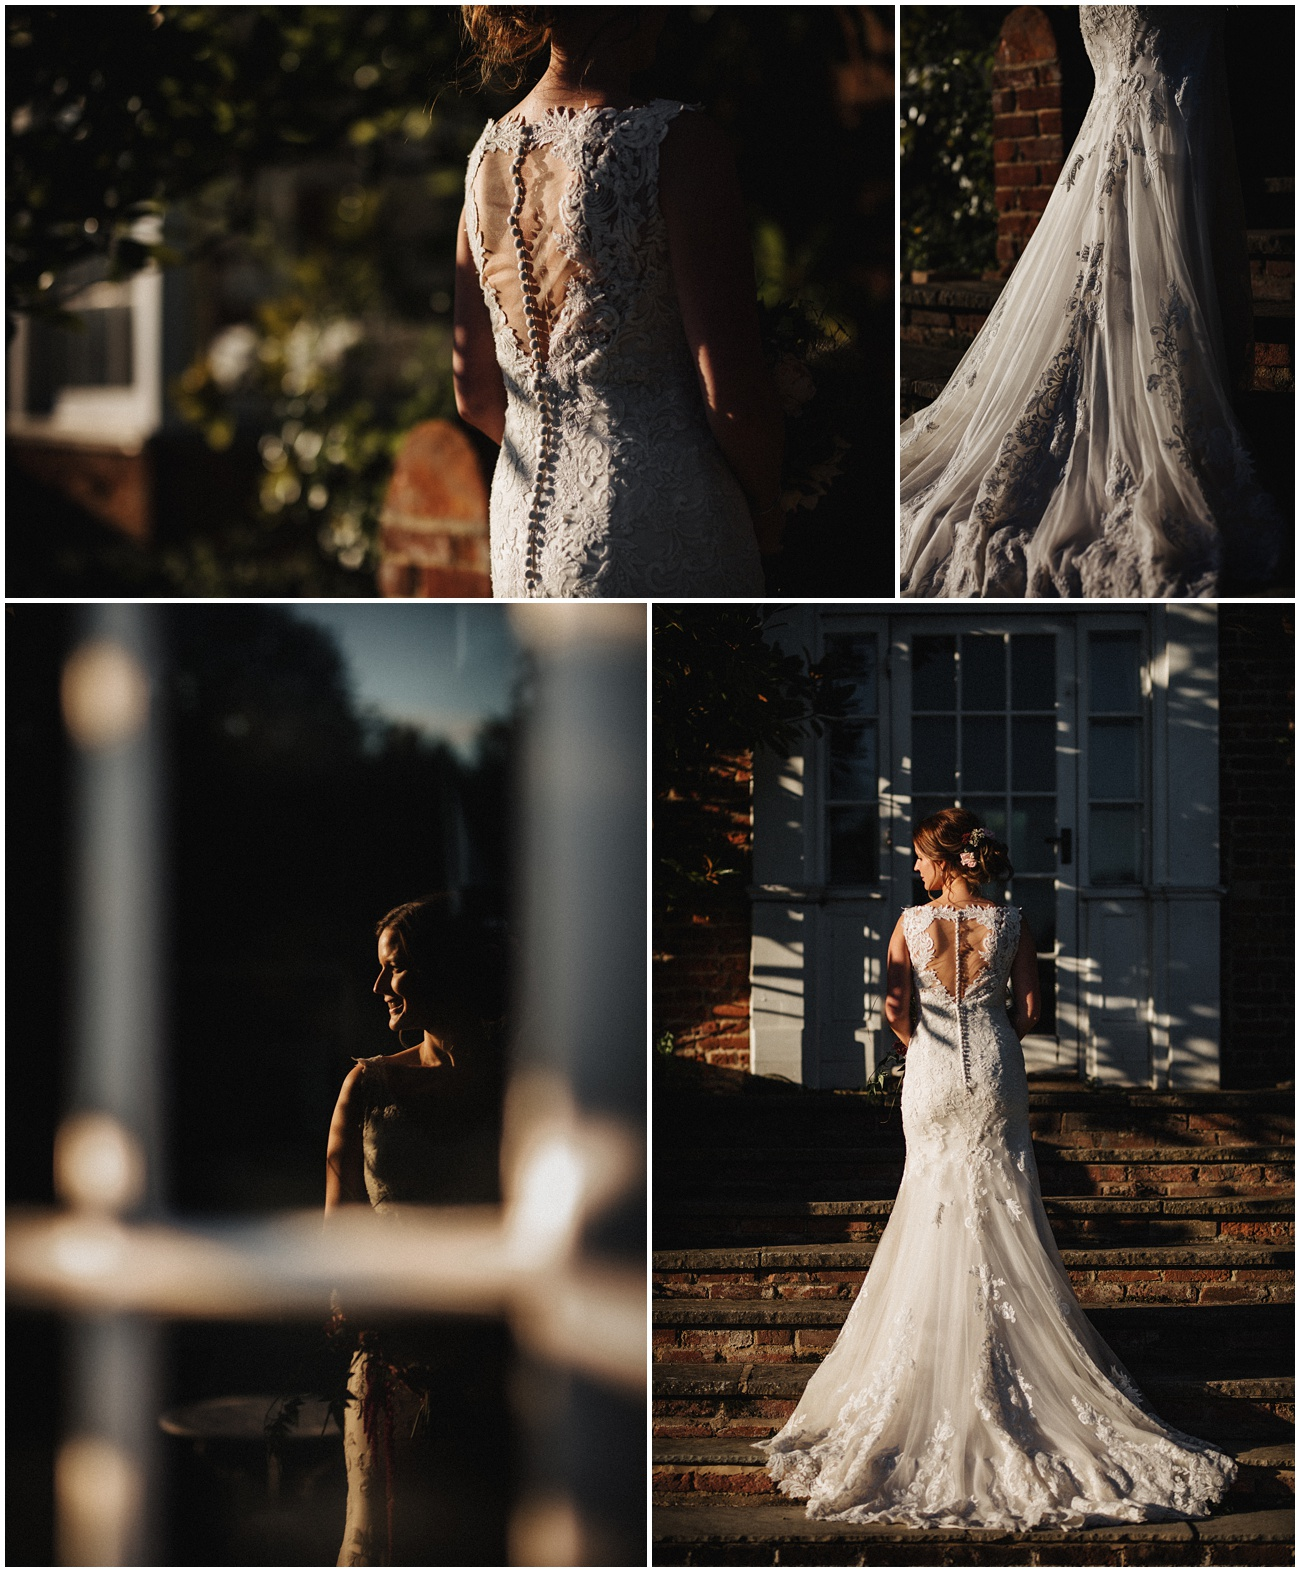 Shots of the bride in her wedding dress in the sunshine